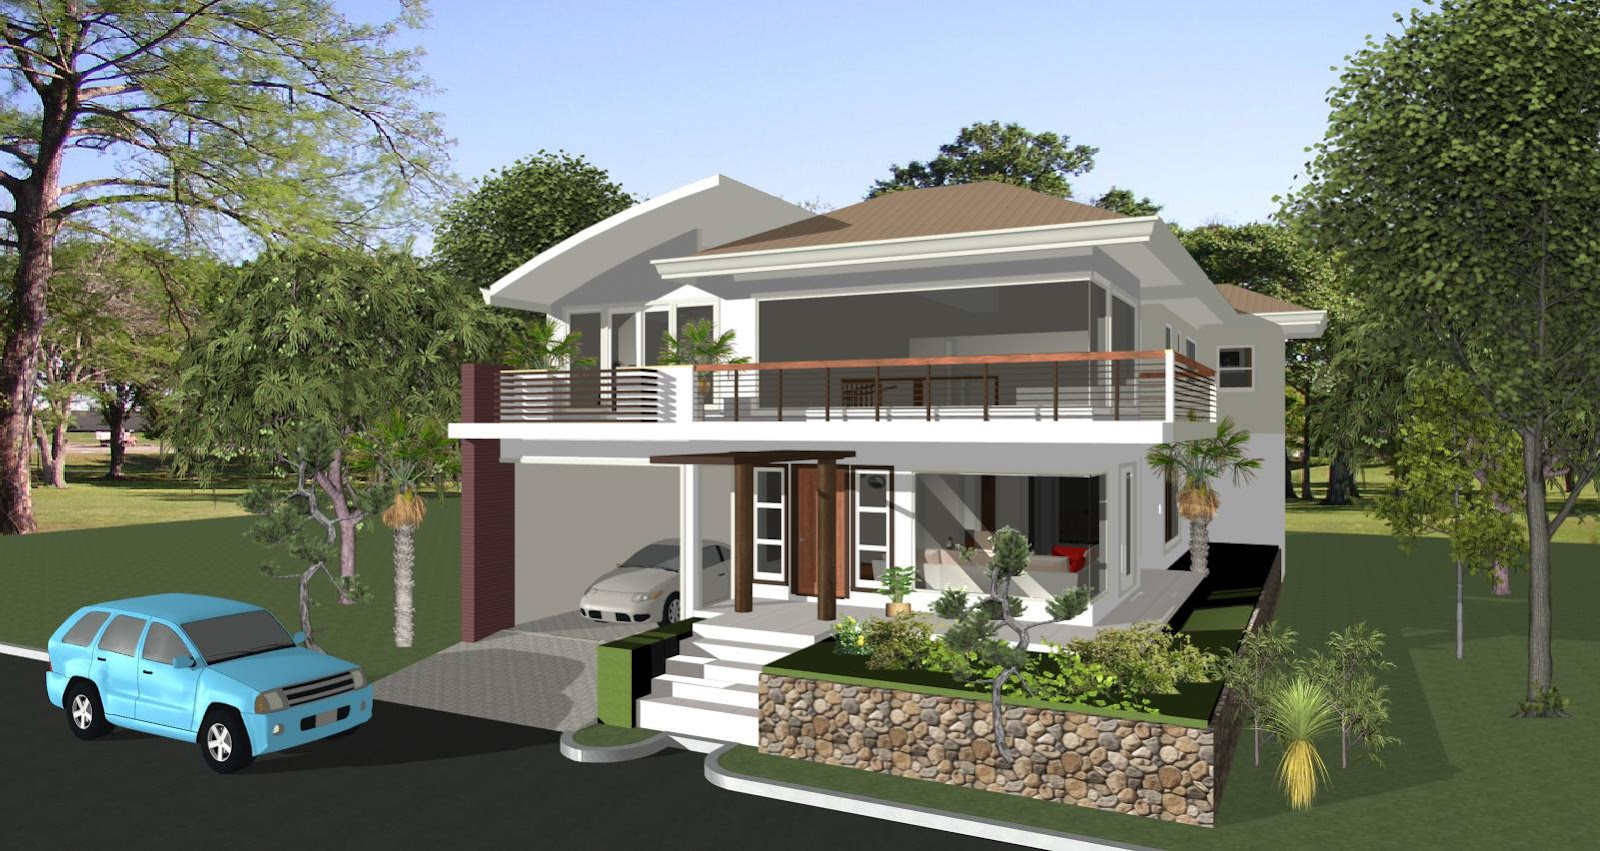 House designs philippines architect the interior for Home designs philippines